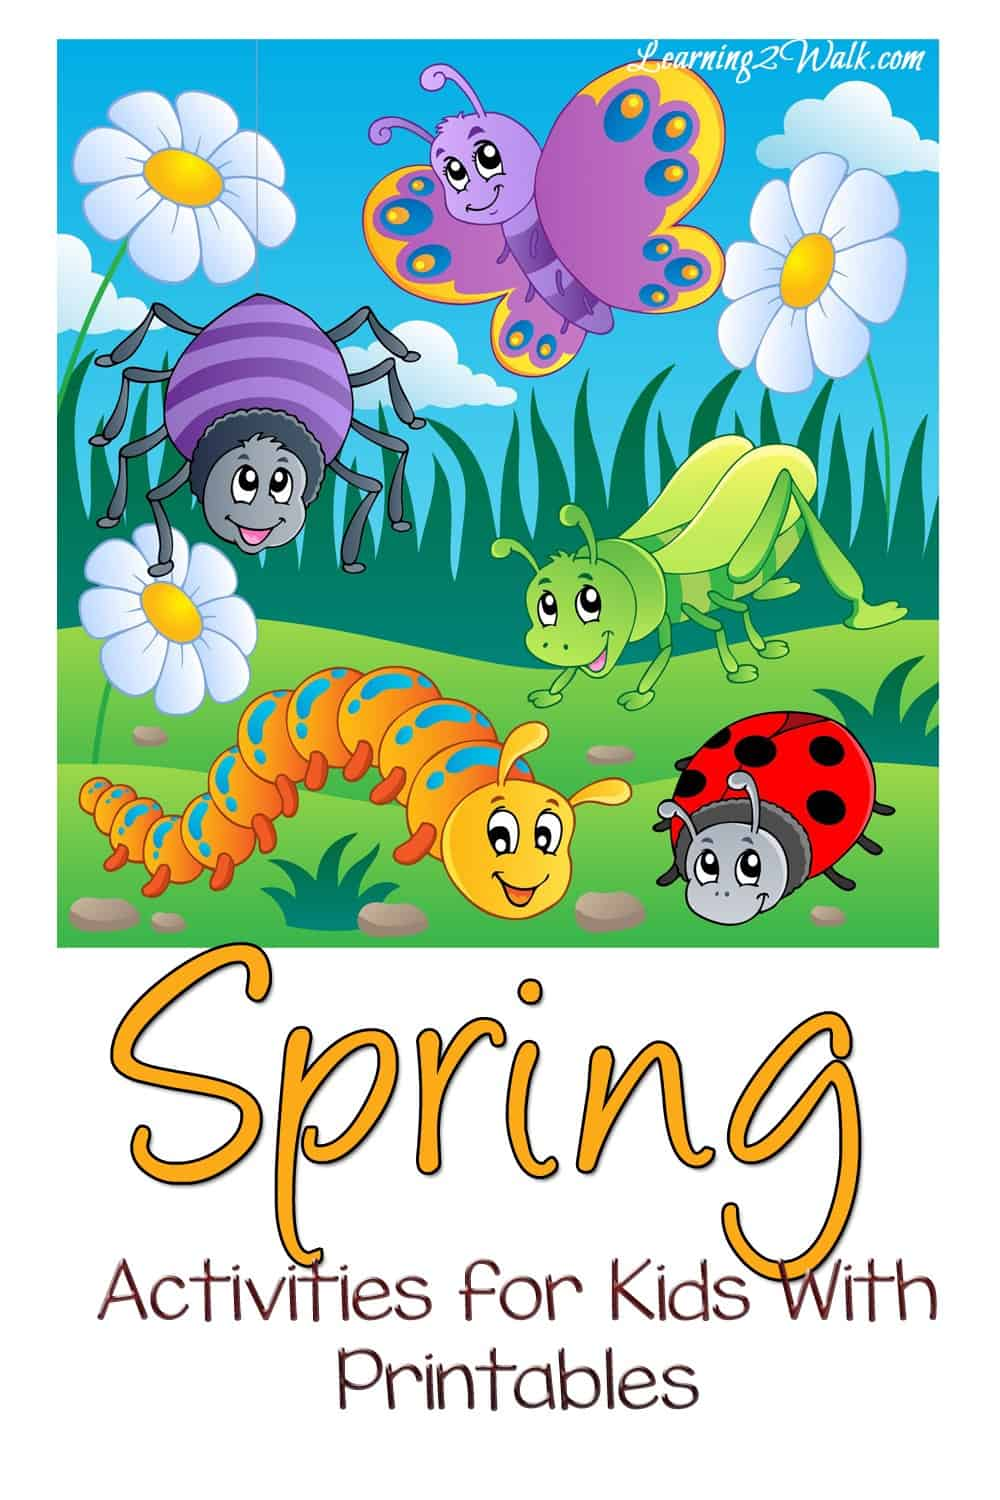 Don't you love all the joy that spring brings? The bugs and the flowers? If you are looking for some spring activities with printables for kids, use some of these!